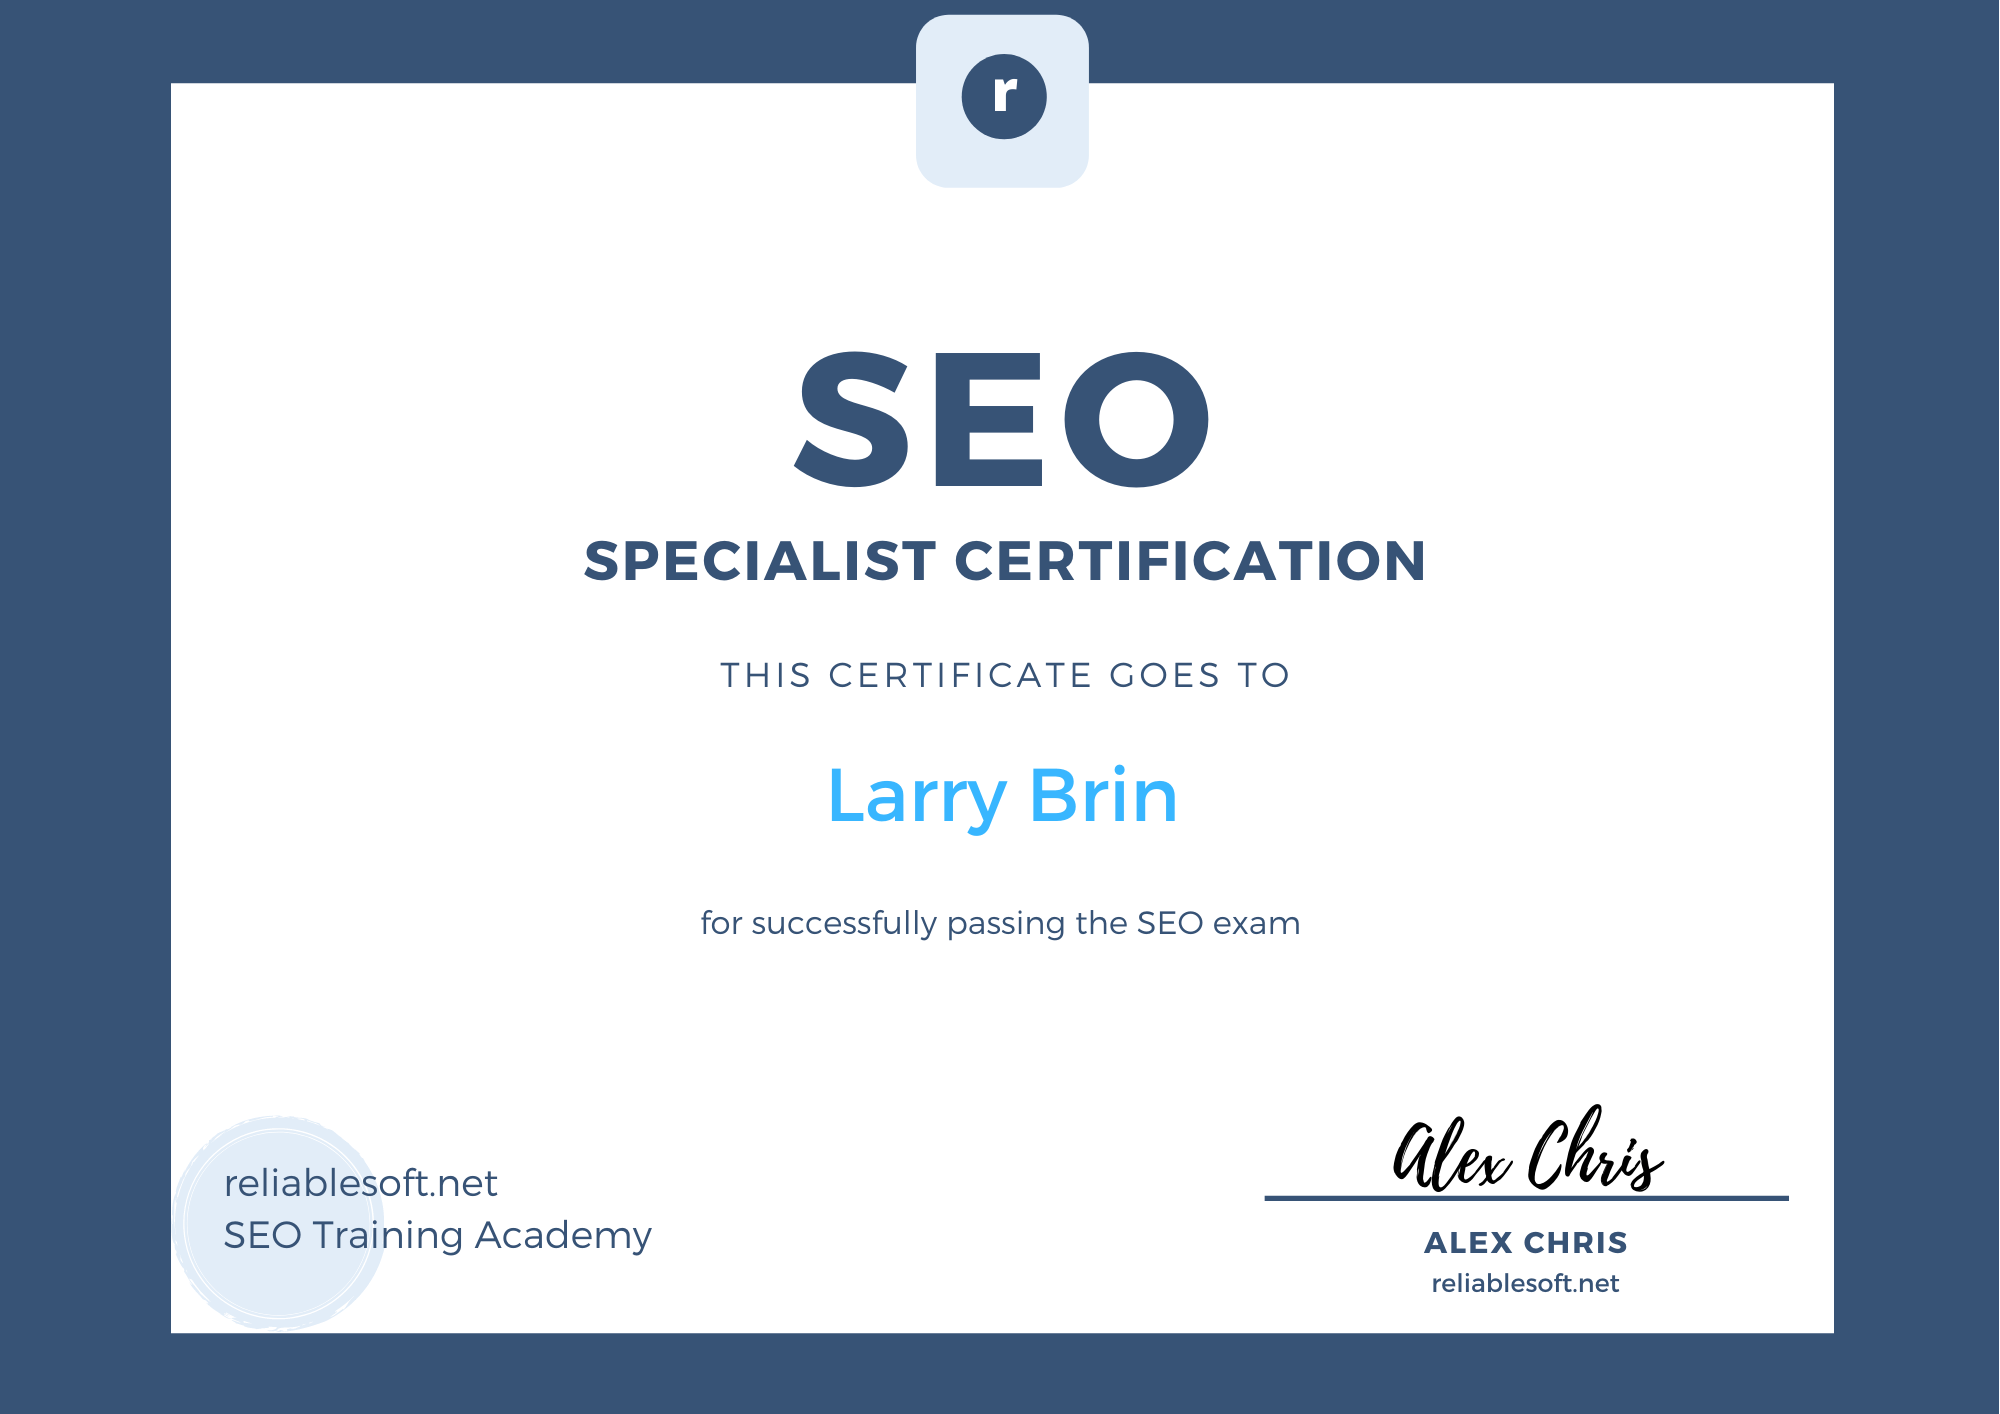 seo certification course reliablesoft earn certificate exam complete pass includes finish ll final